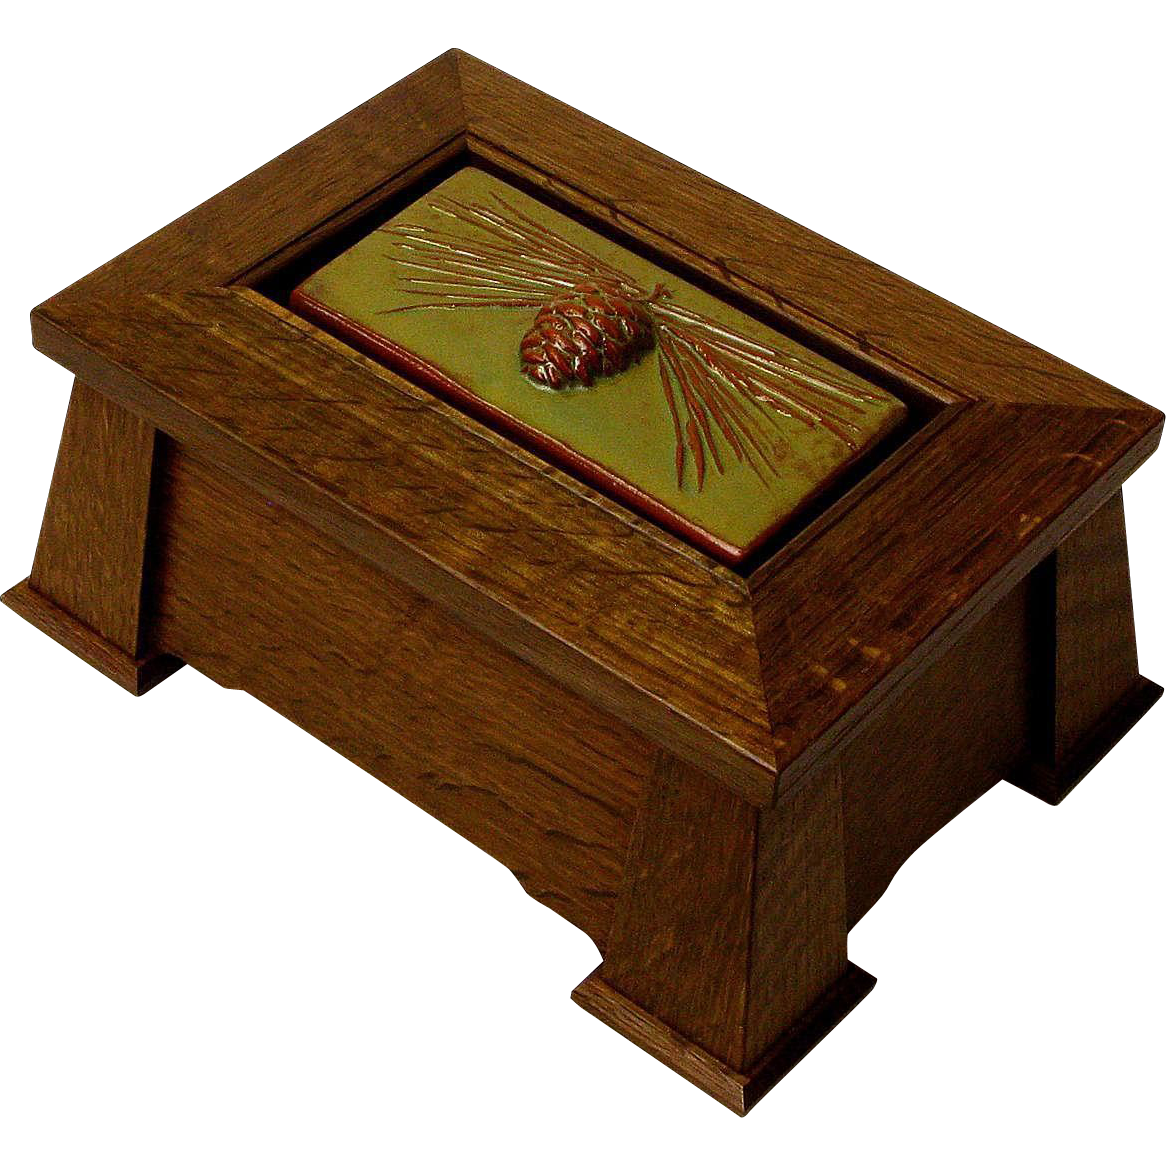 Mission Style Keepsake Dresser Jewelry Box w/ Inset Pine Cone Ceramic Tile, Artisan Crafted